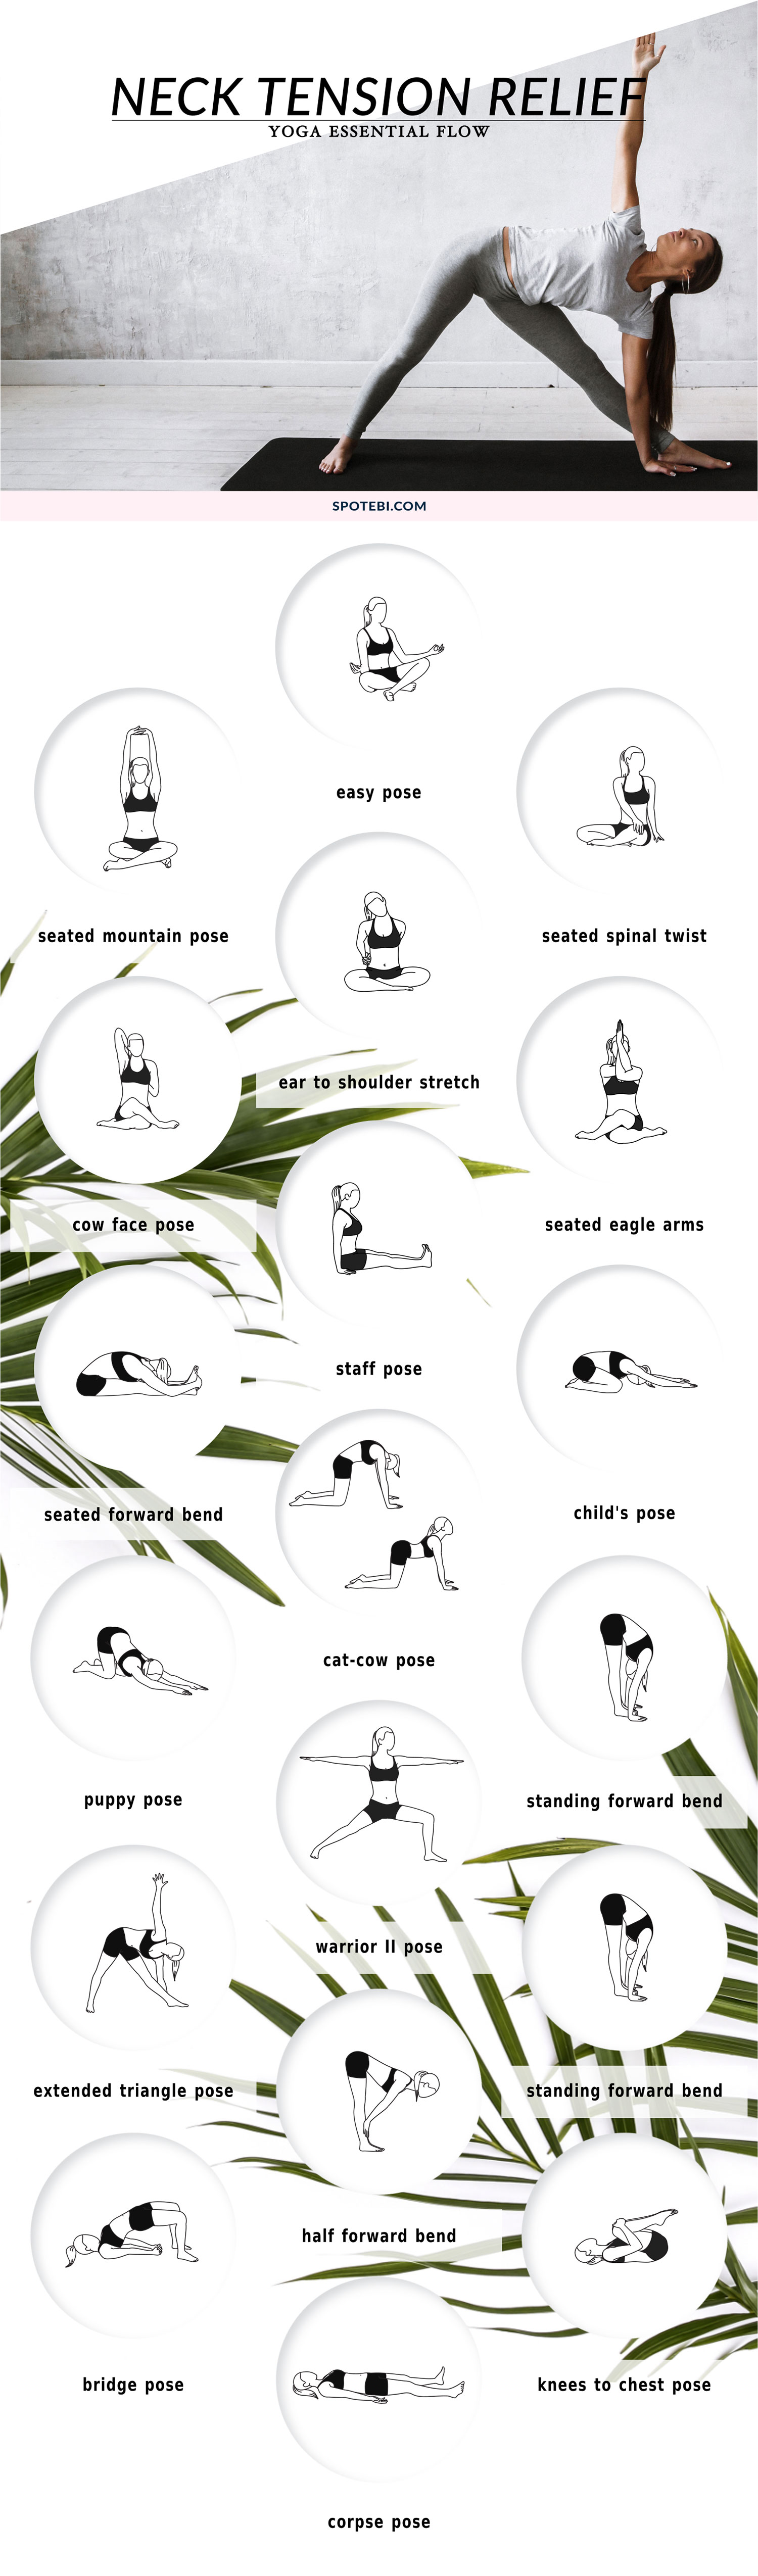 To realign your posture and ease neck and shoulder pain, do this 16-minute yoga flow at least once a week. Feel the movement in your spine and coordinate the breath with each movement to promote neuromuscular reeducation and create change that leads to more functional movement patterns. https://www.spotebi.com/yoga-sequences/neck-shoulder-upper-back-tension-relief-flow/